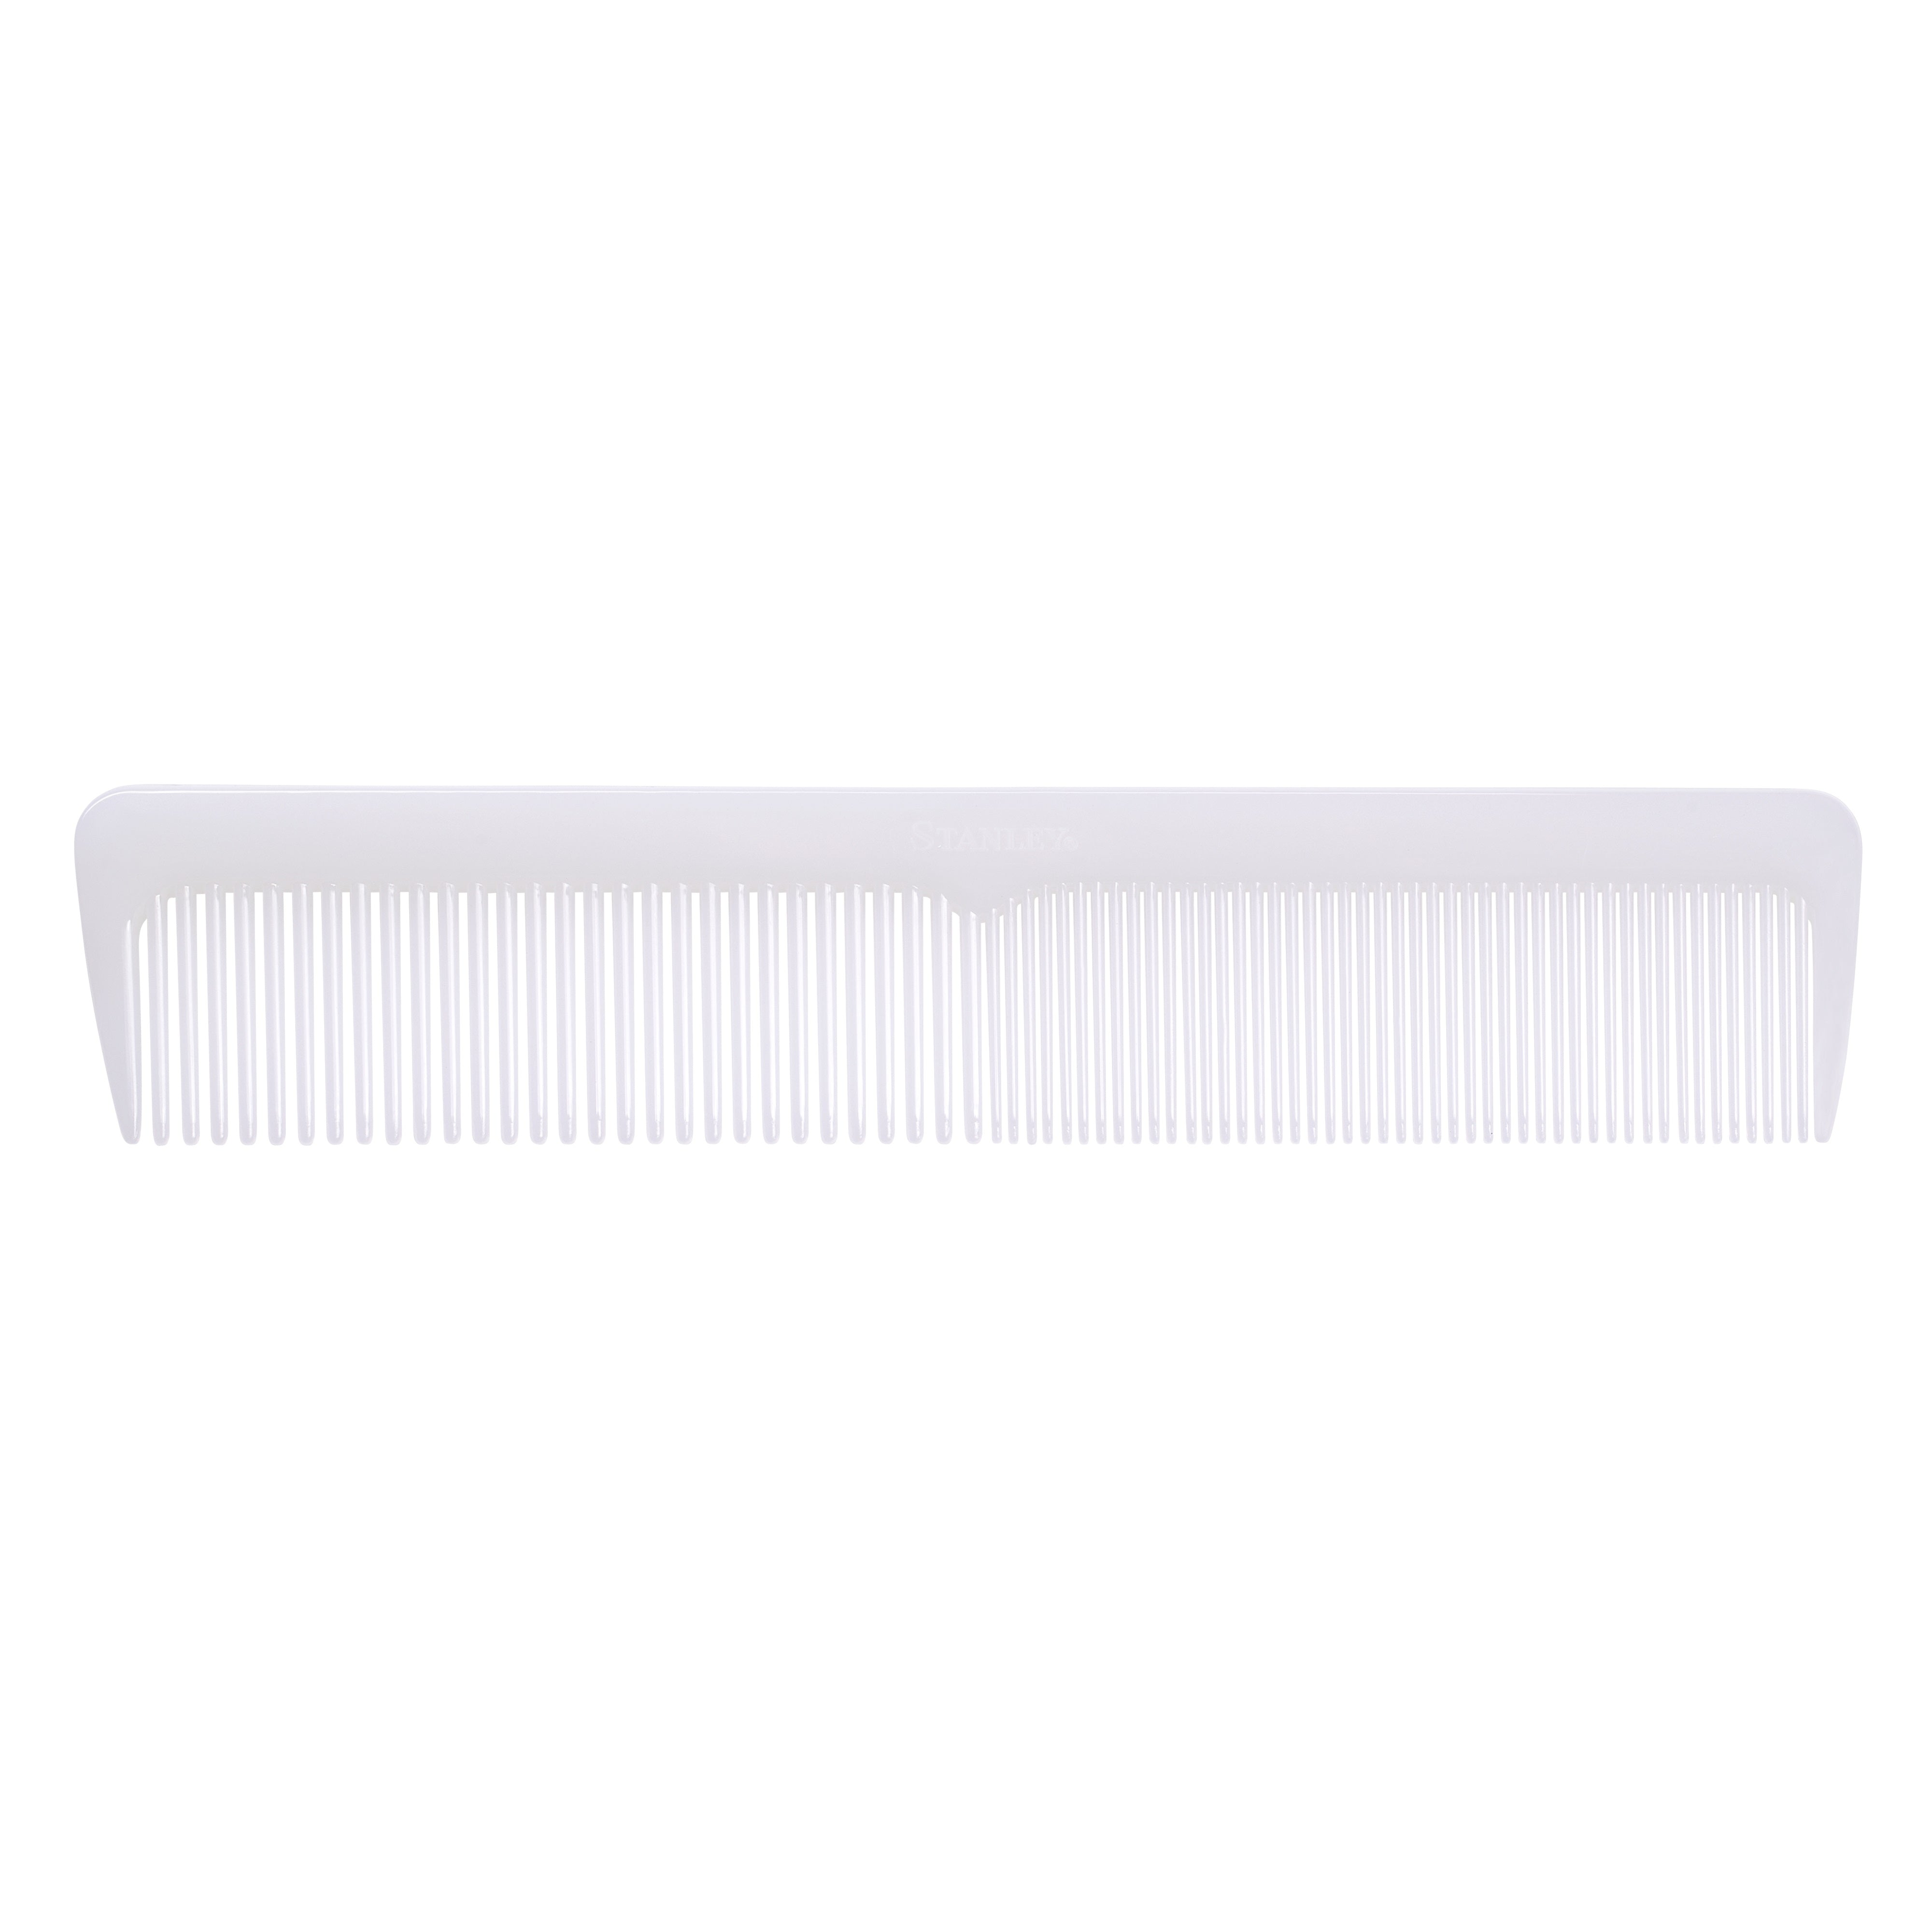 Ladies Comb, Convenient Styling Comb, Anti Static, Chemical & Heat Resistant